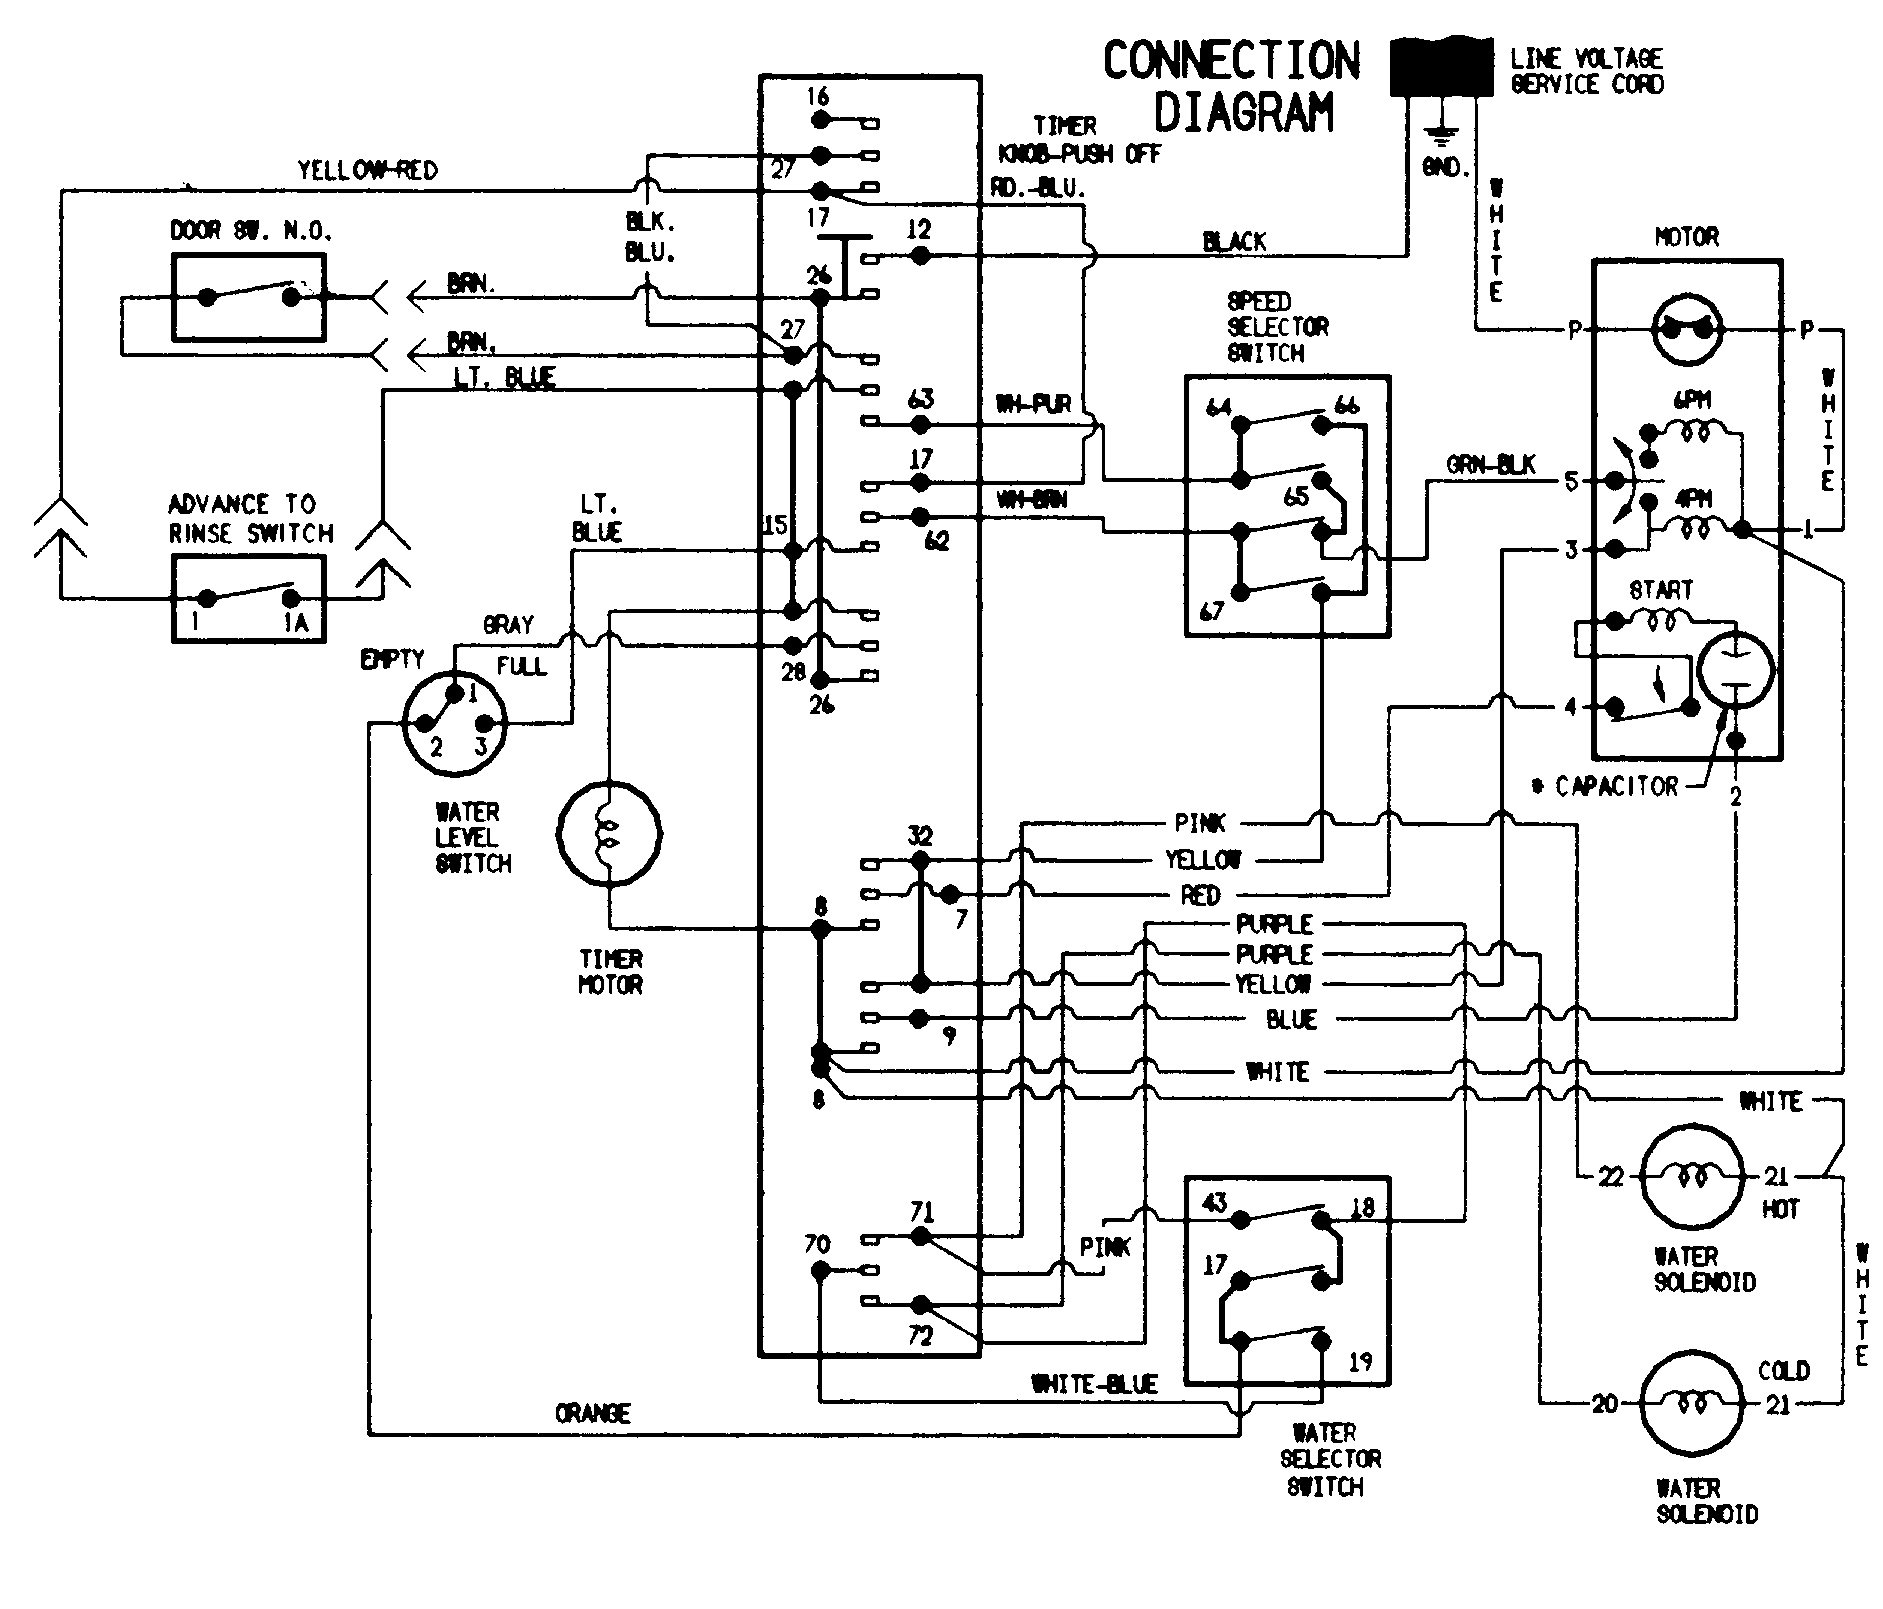 dryer schematic ge dryer schematic diagram #5